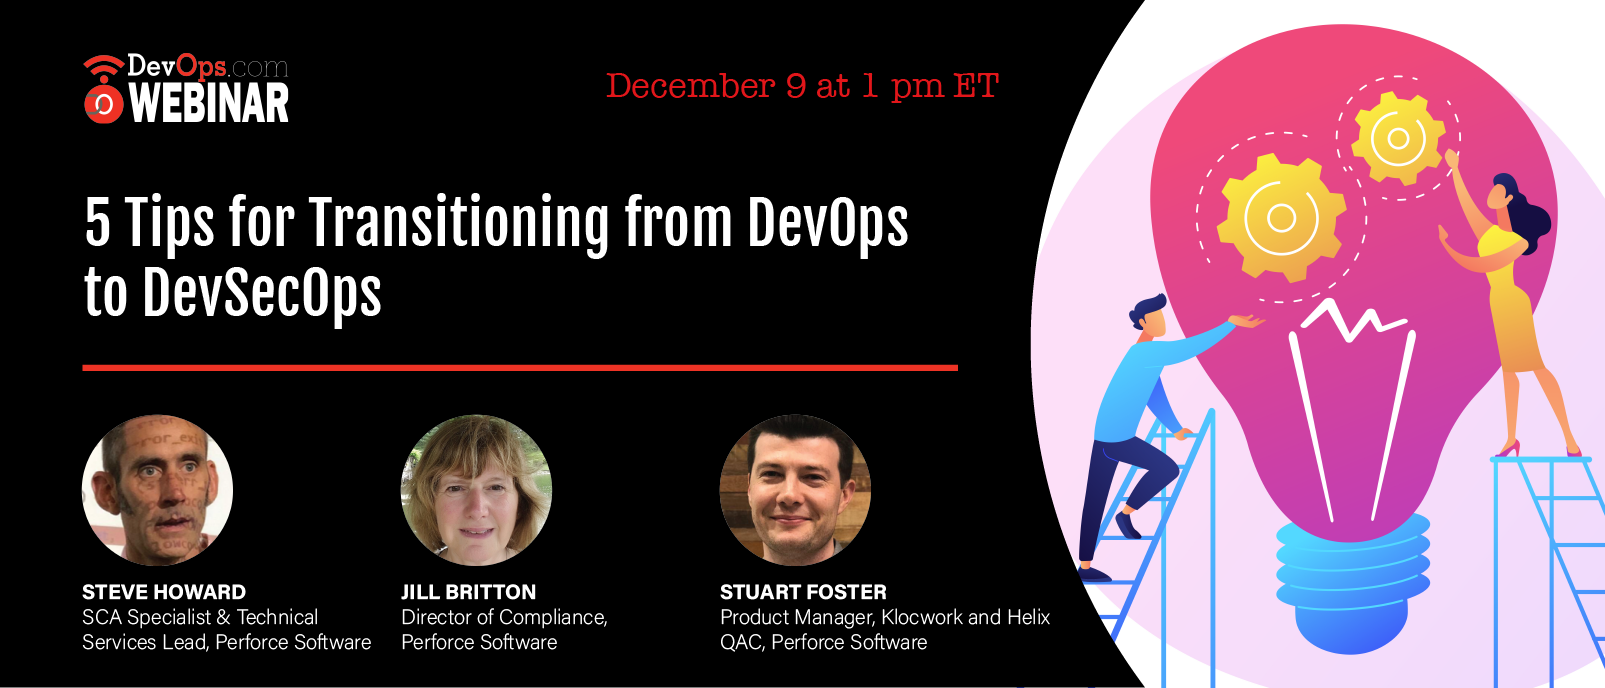 5 Tips for Transitioning from DevOps to DevSecOps